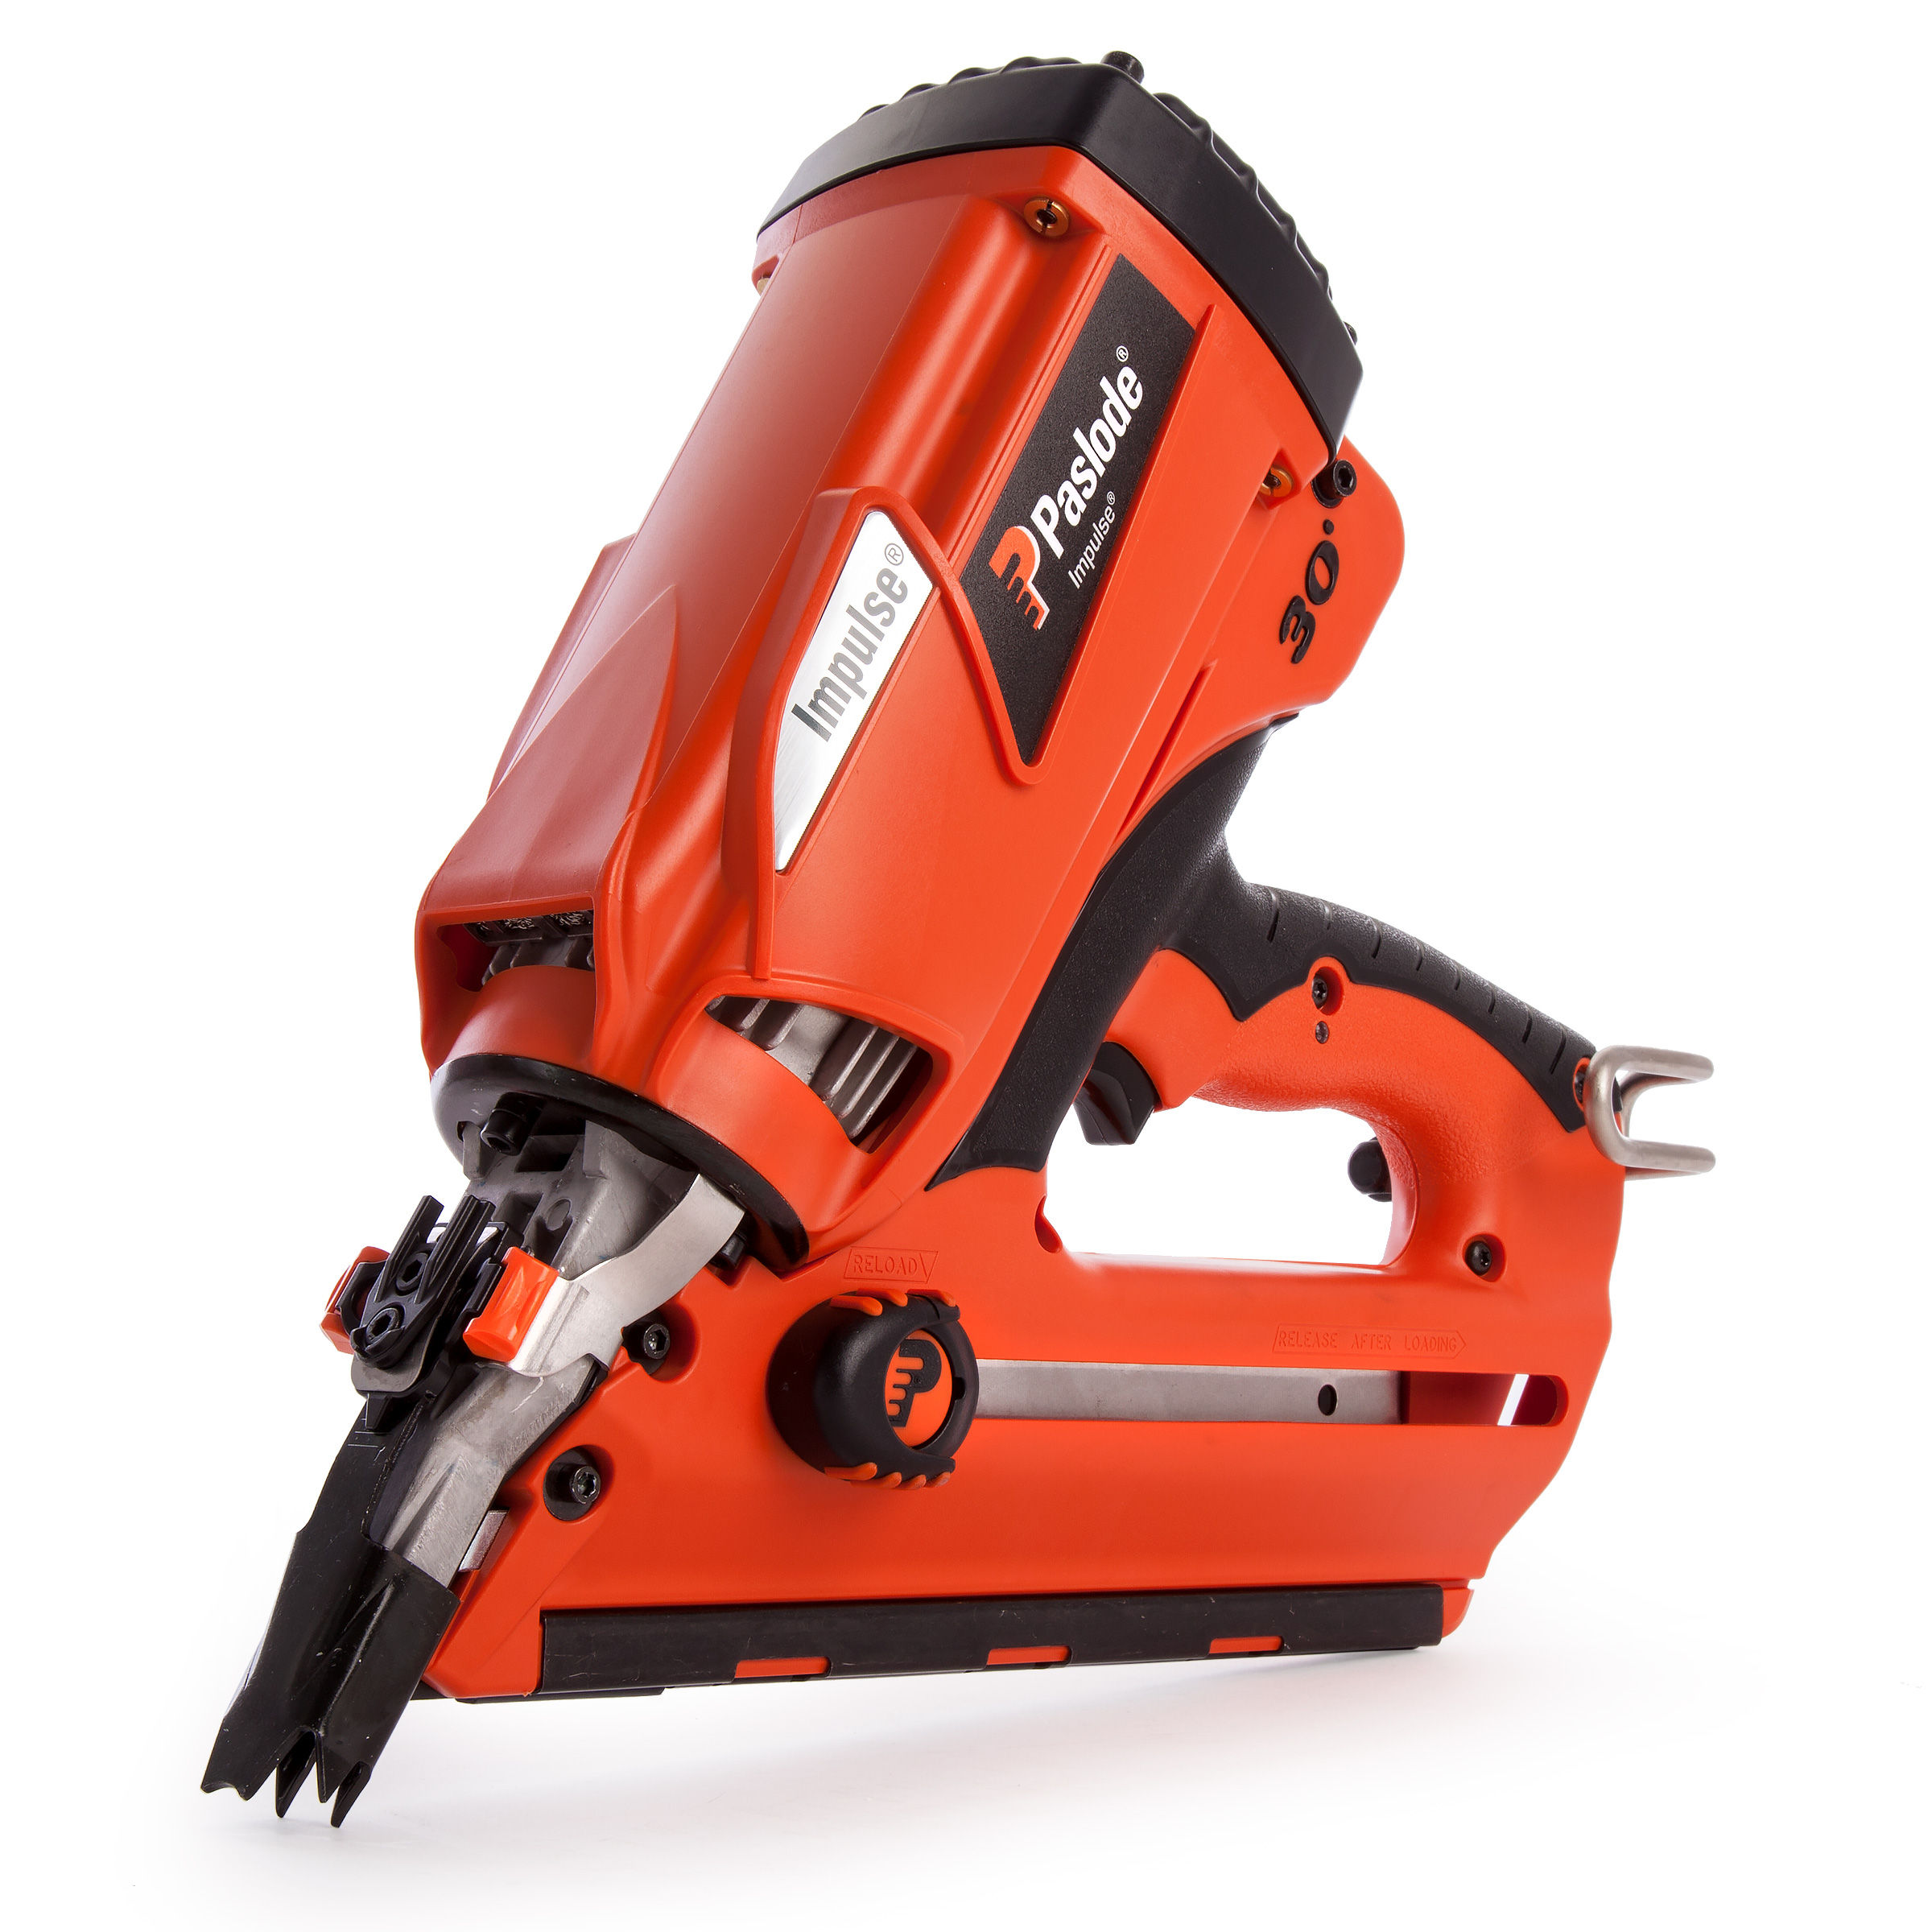 Toolstop Paslode Im350 Cordless 7 2v 1st Fix Gas Framing